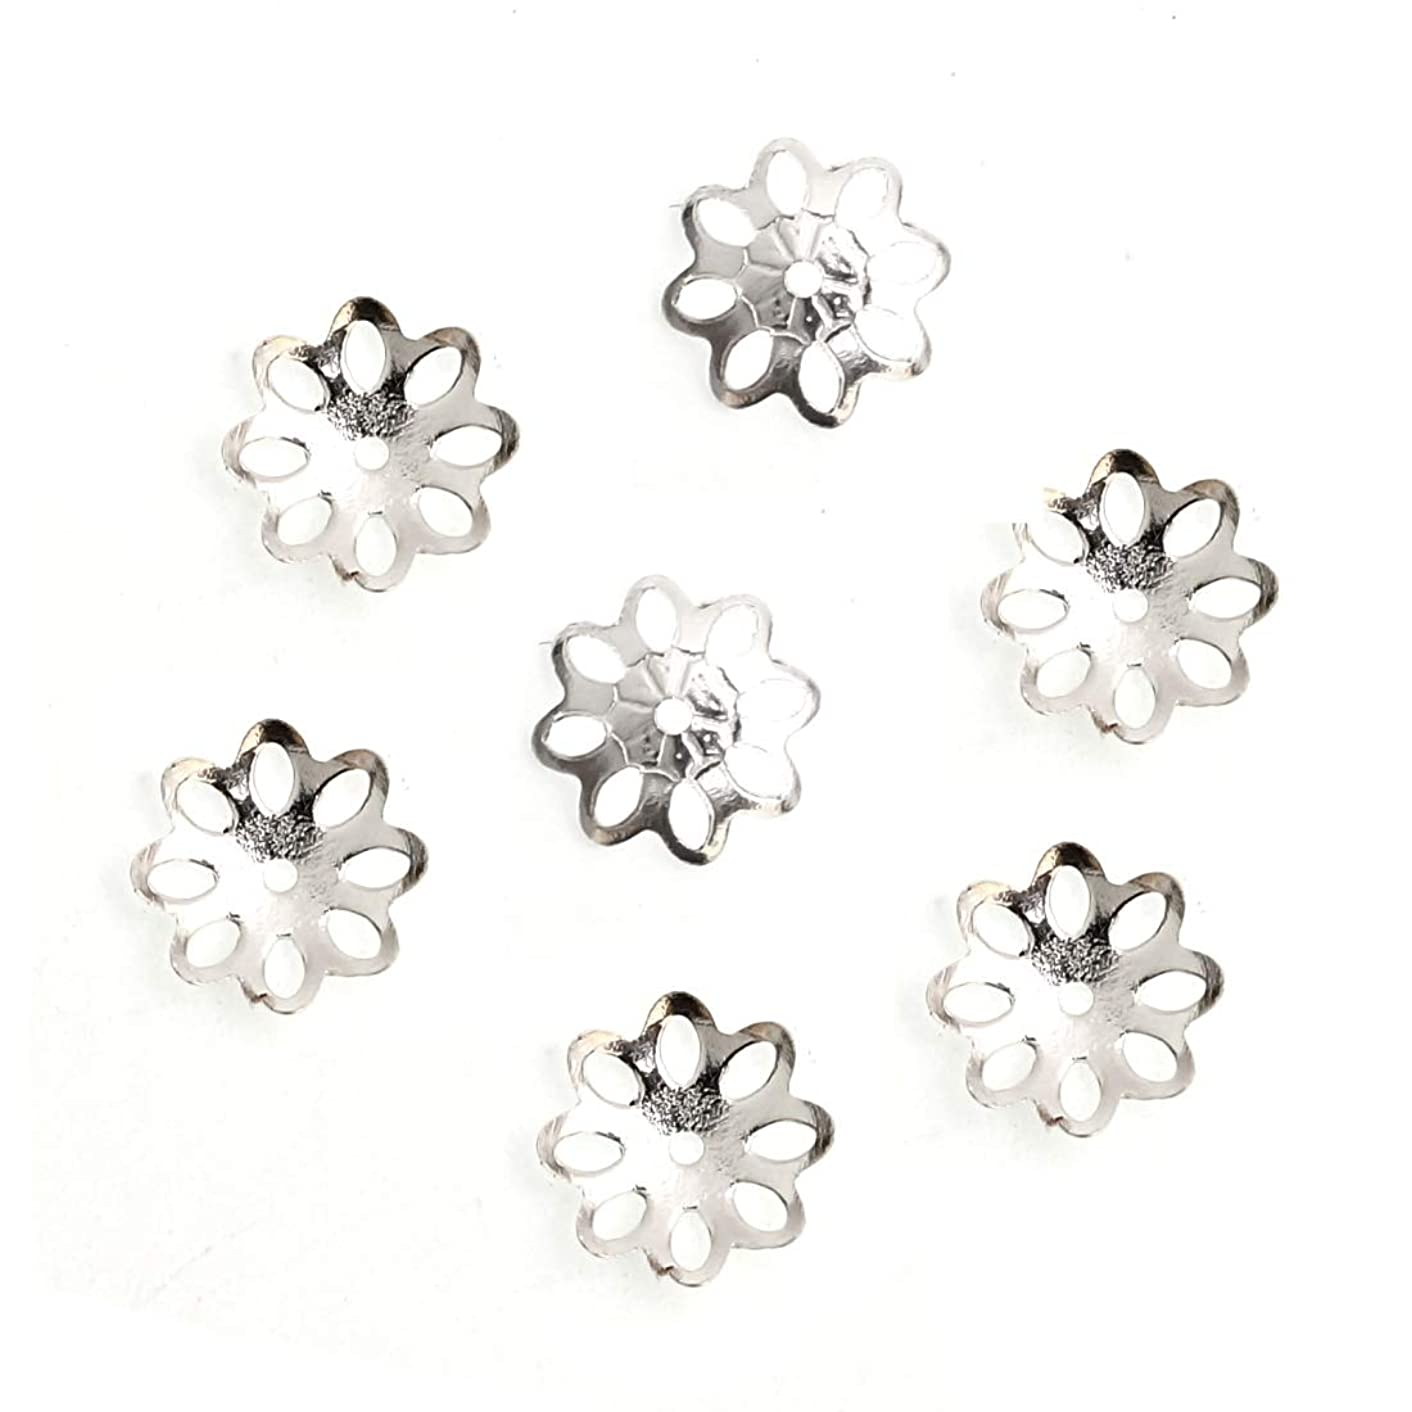 20pcs x Sterling Silver 8mm Flowery Round Bead Caps for Jewelry Craft Making Findings SS120